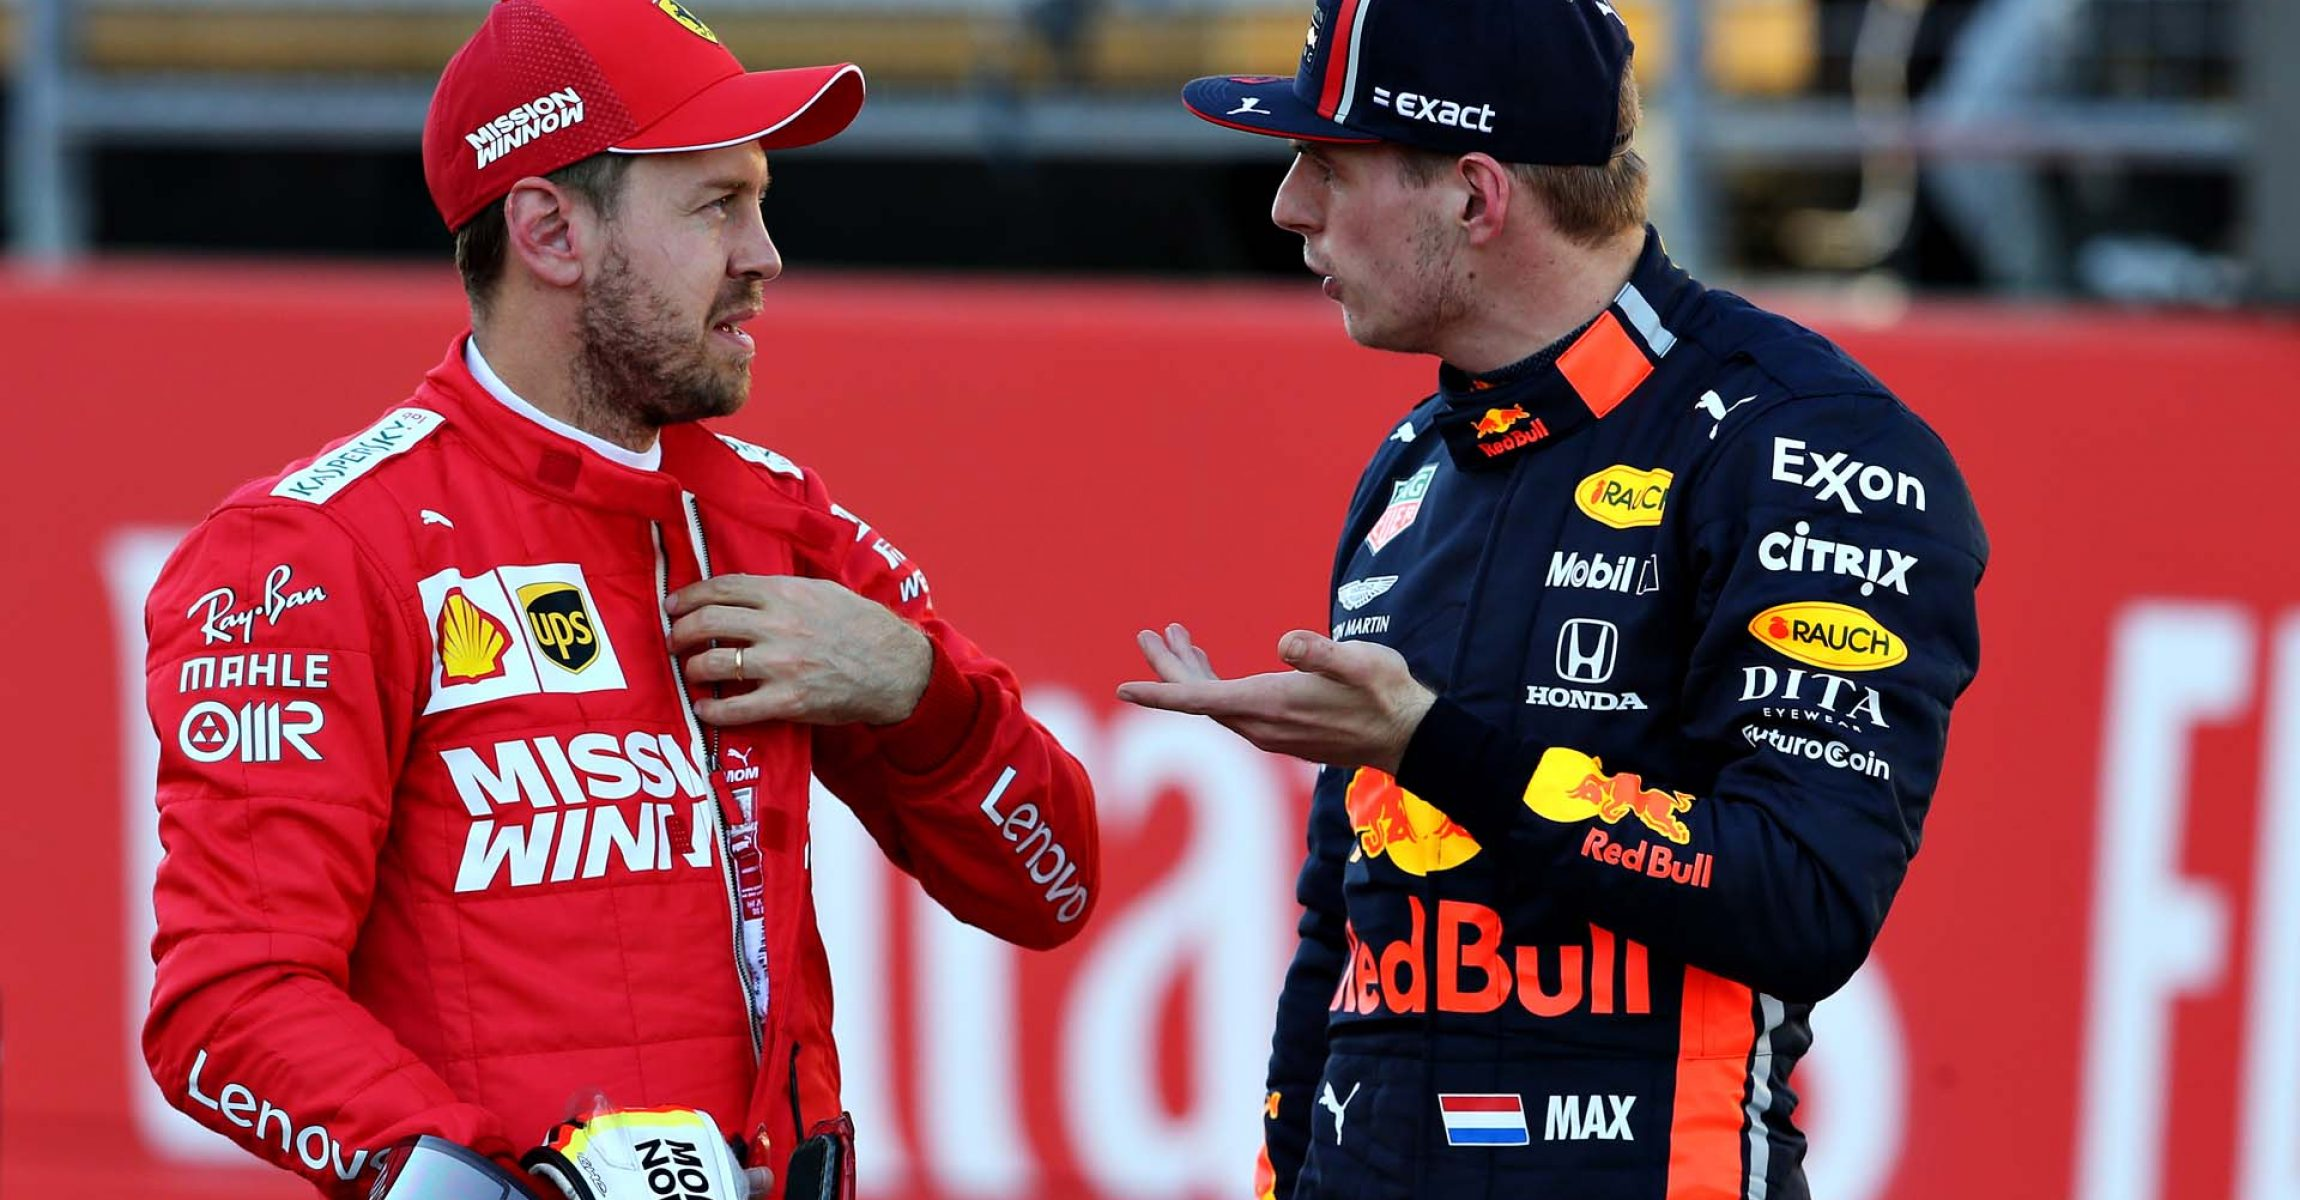 AUSTIN, TEXAS - NOVEMBER 02: Second place qualifier Sebastian Vettel of Germany and Ferrari talks with third place qualifier Max Verstappen of Netherlands and Red Bull Racing in parc ferme during qualifying for the F1 Grand Prix of USA at Circuit of The Americas on November 02, 2019 in Austin, Texas. (Photo by Charles Coates/Getty Images) // Getty Images / Red Bull Content Pool  // AP-222MHPBKS1W11 // Usage for editorial use only //